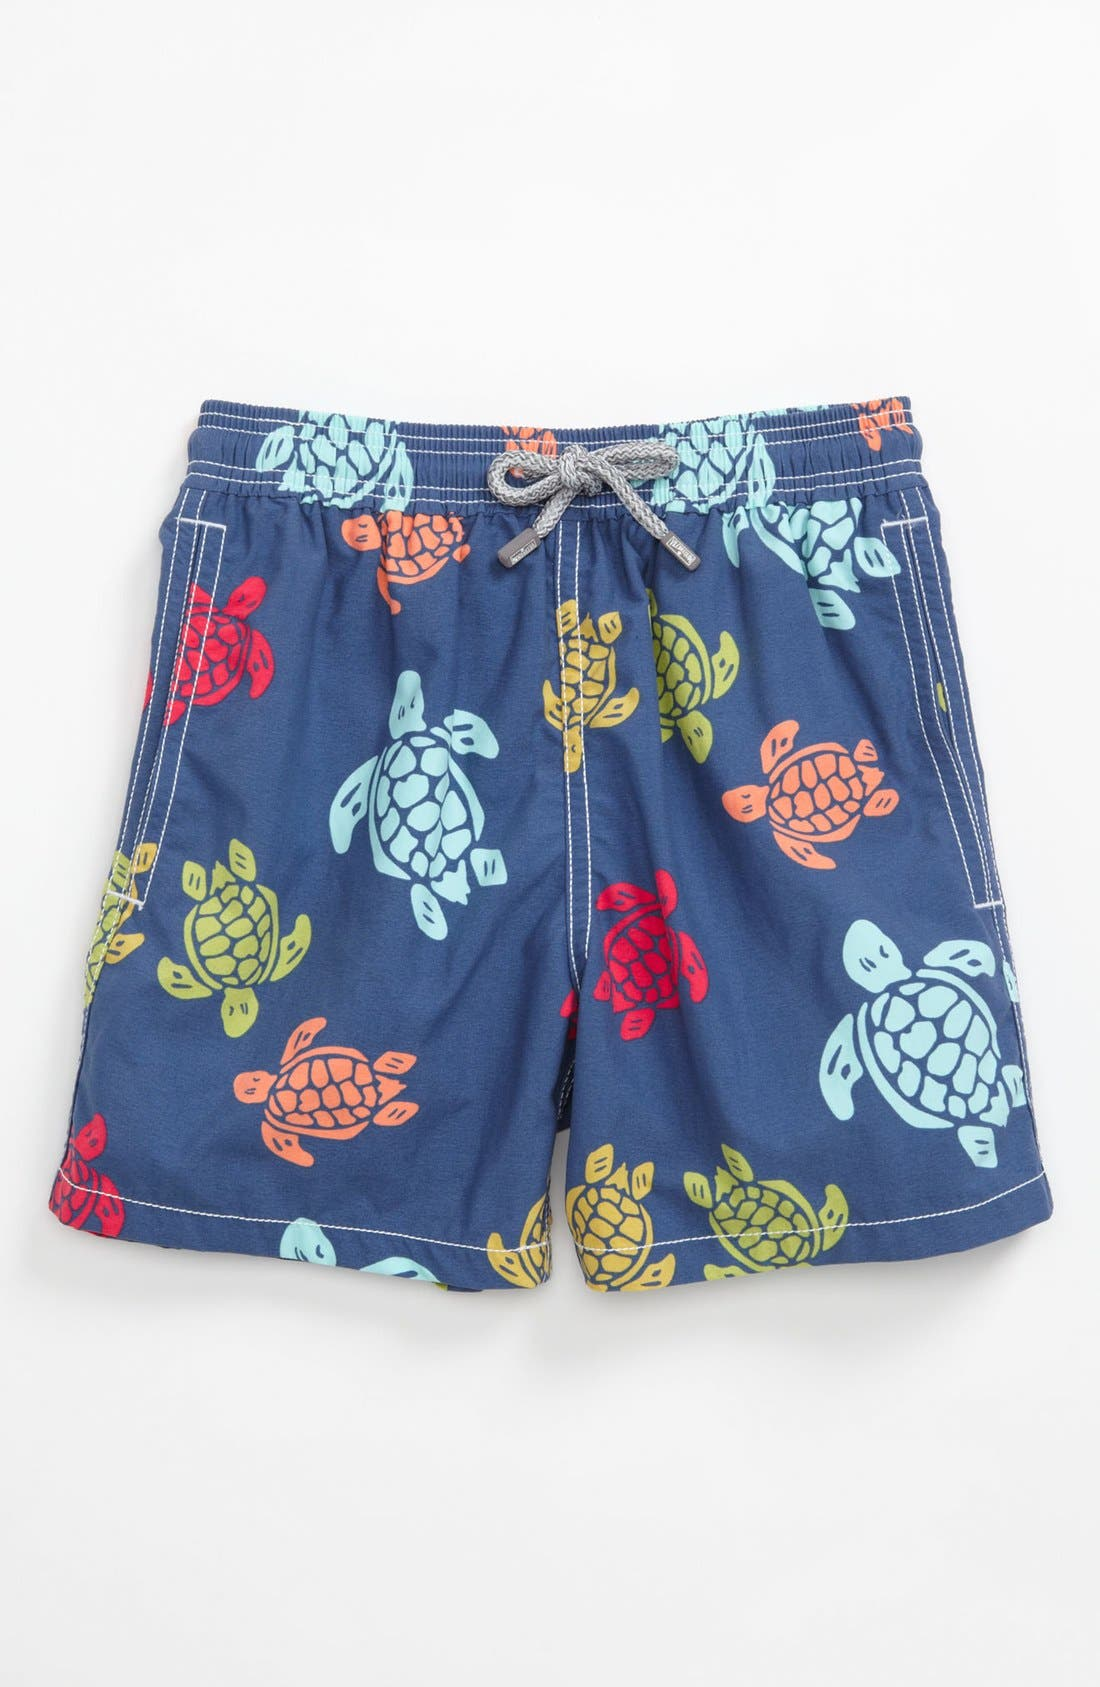 Alternate Image 1 Selected - Vilebrequin 'Jim' Turtle Print Swim Trunks (Little Boys)